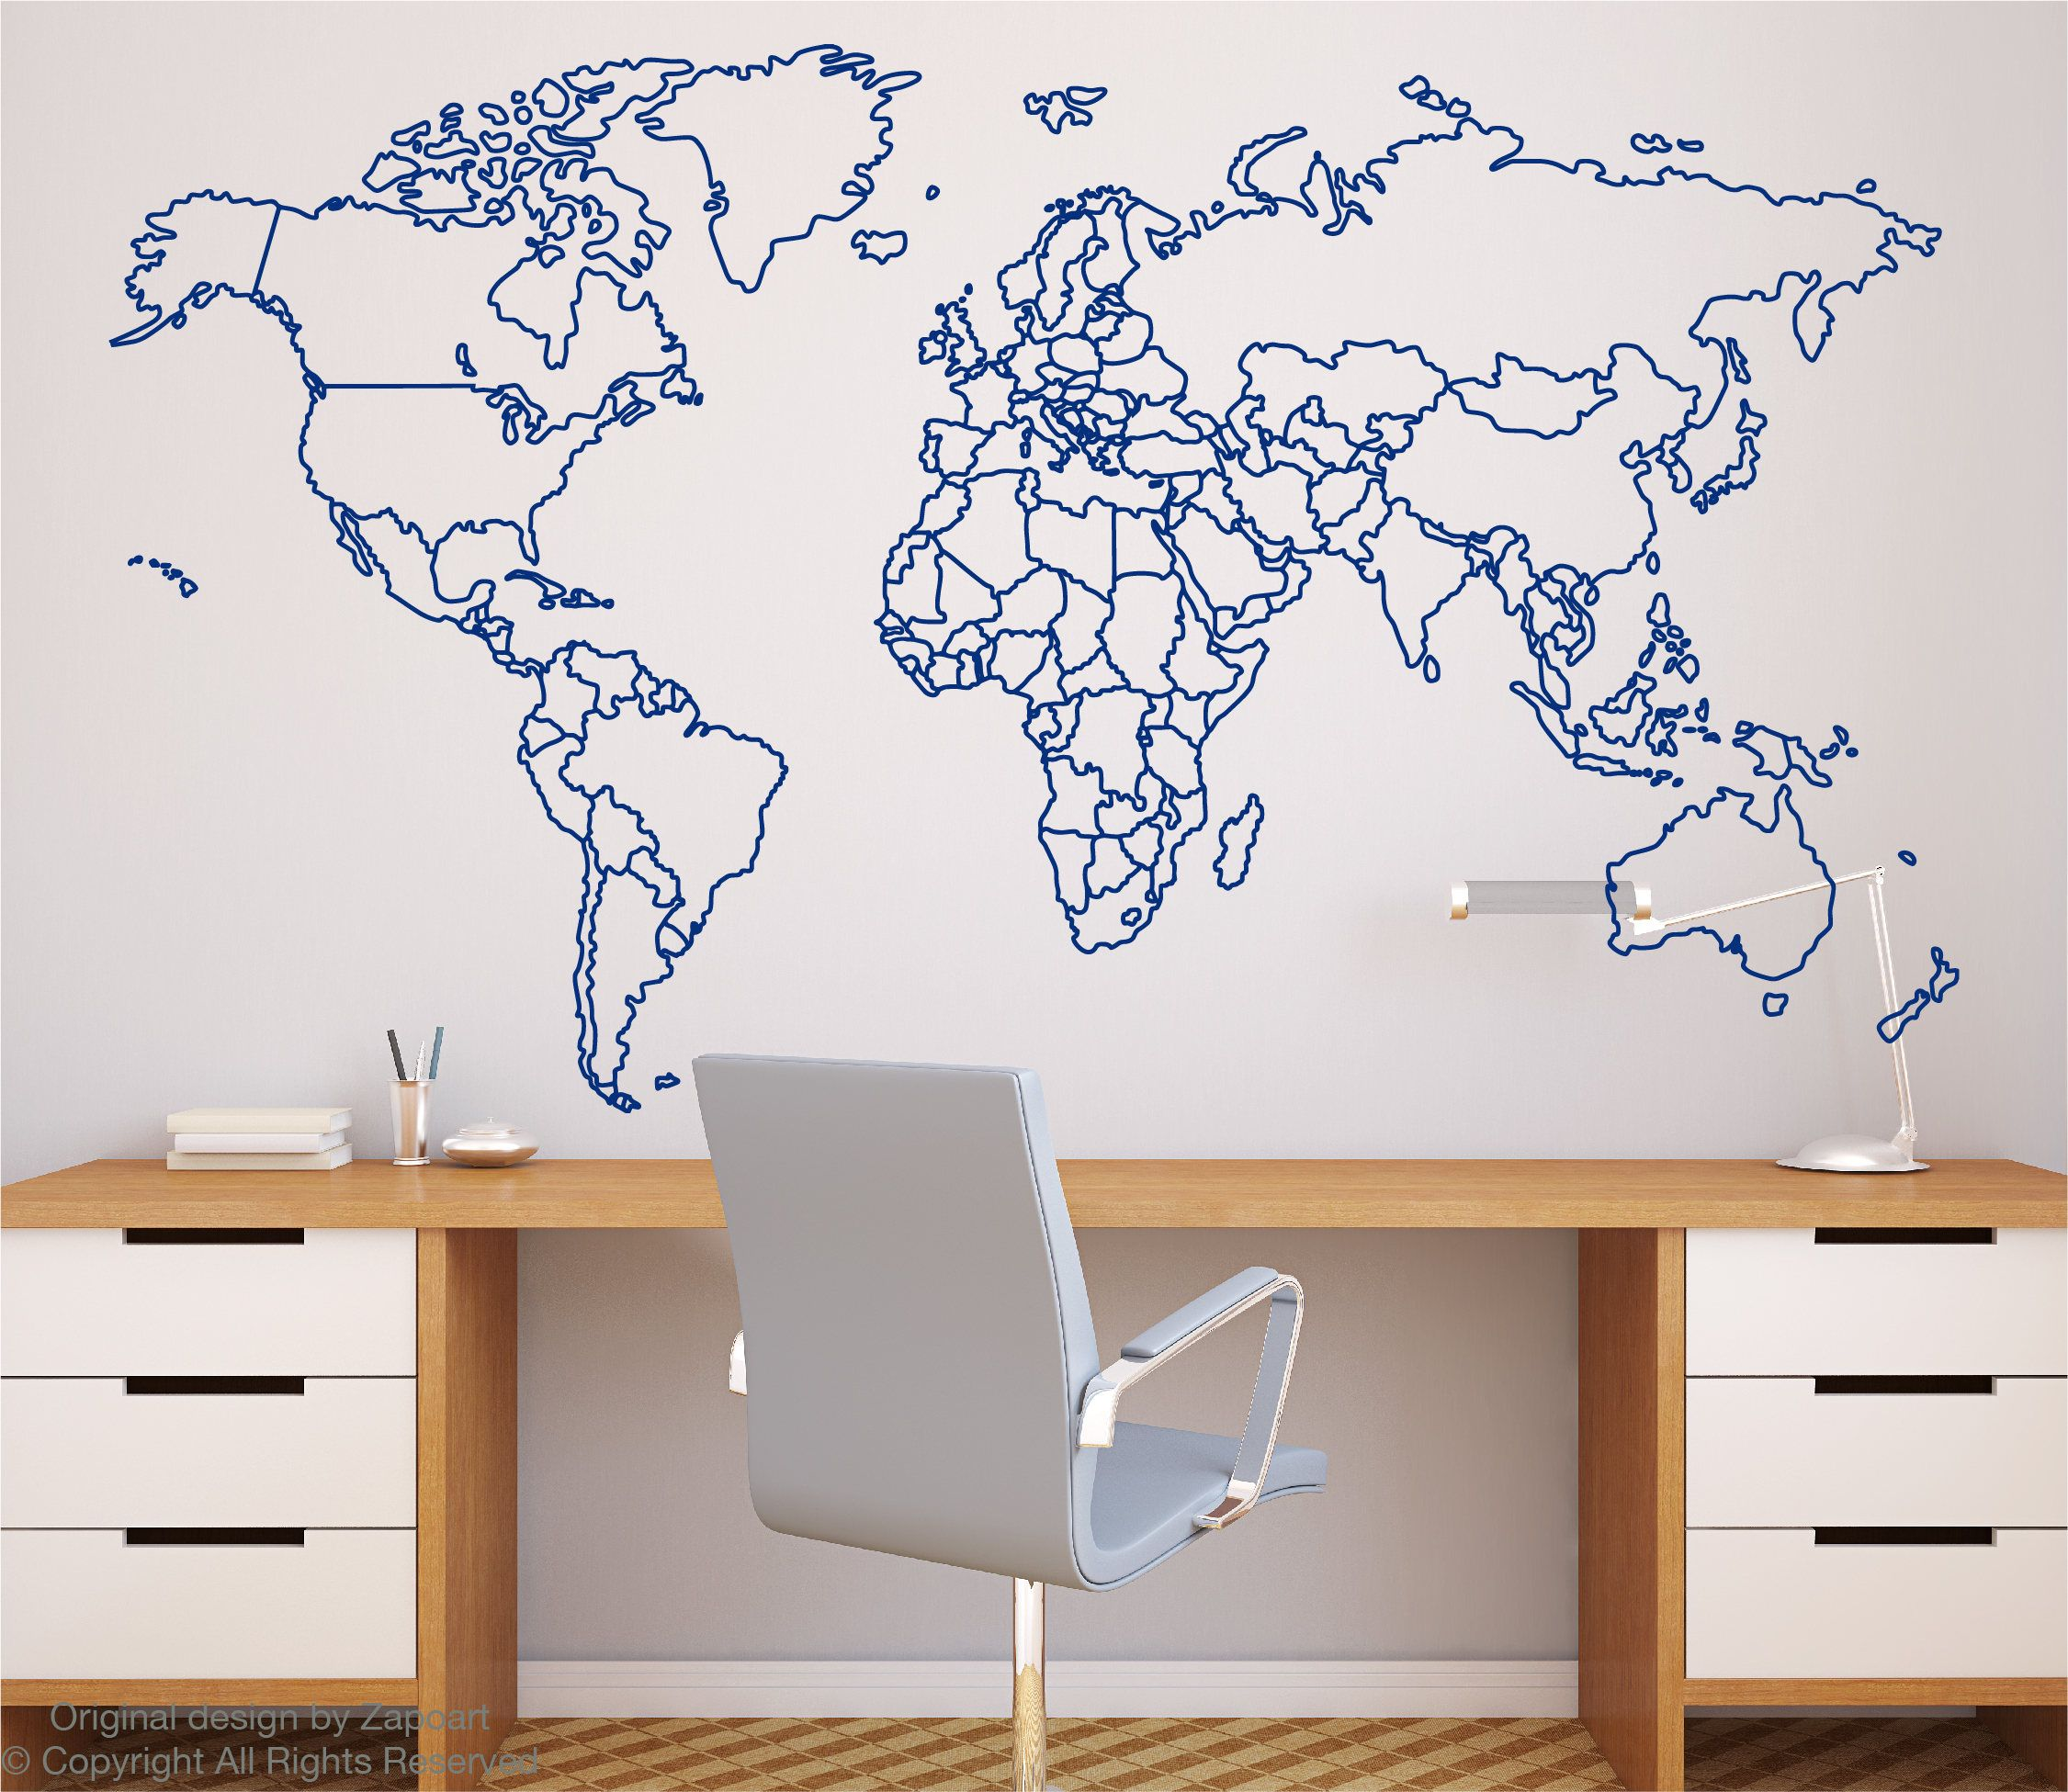 World map with countries borders outline wall decal by zapoart on world map with countries borders outline wall decal by zapoart on etsy gumiabroncs Images